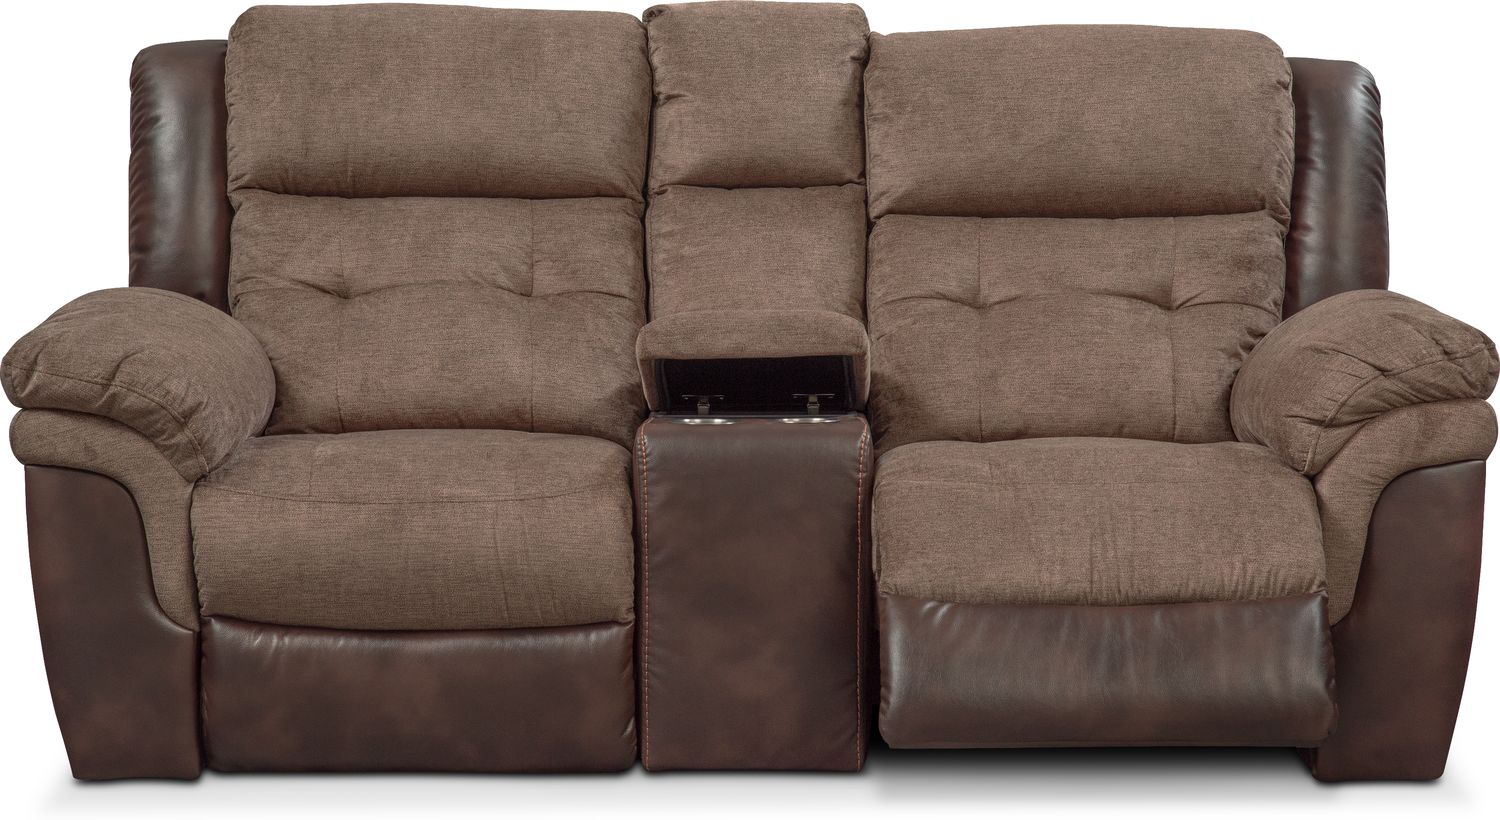 Click to change image. & Tacoma Dual Power Reclining Loveseat with Console - Brown | Value ... islam-shia.org